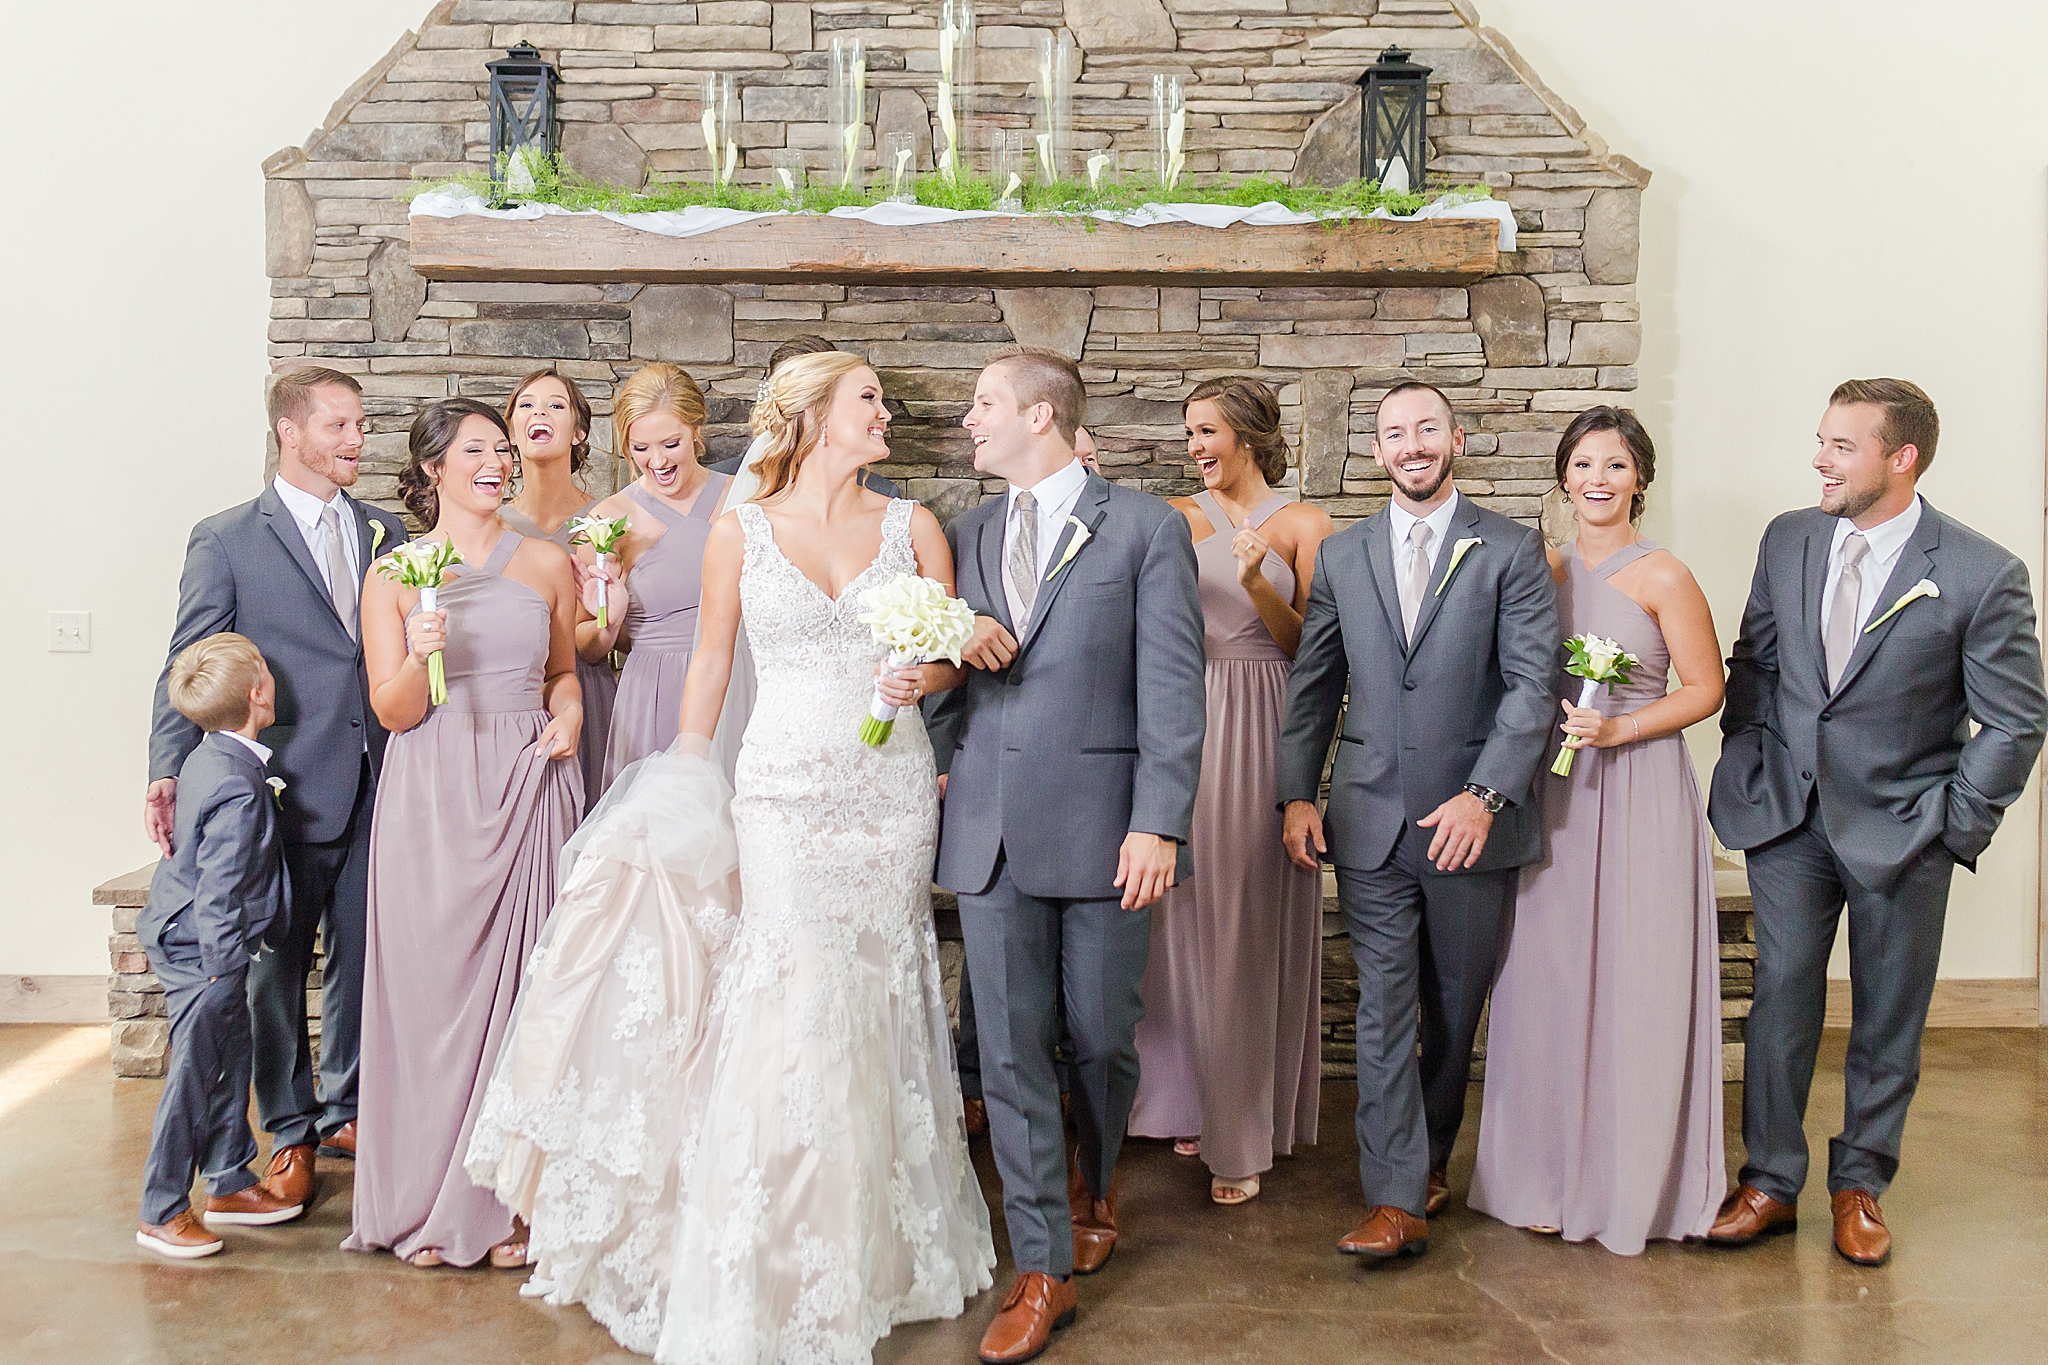 Alabama wedding party poses in front of fireplace